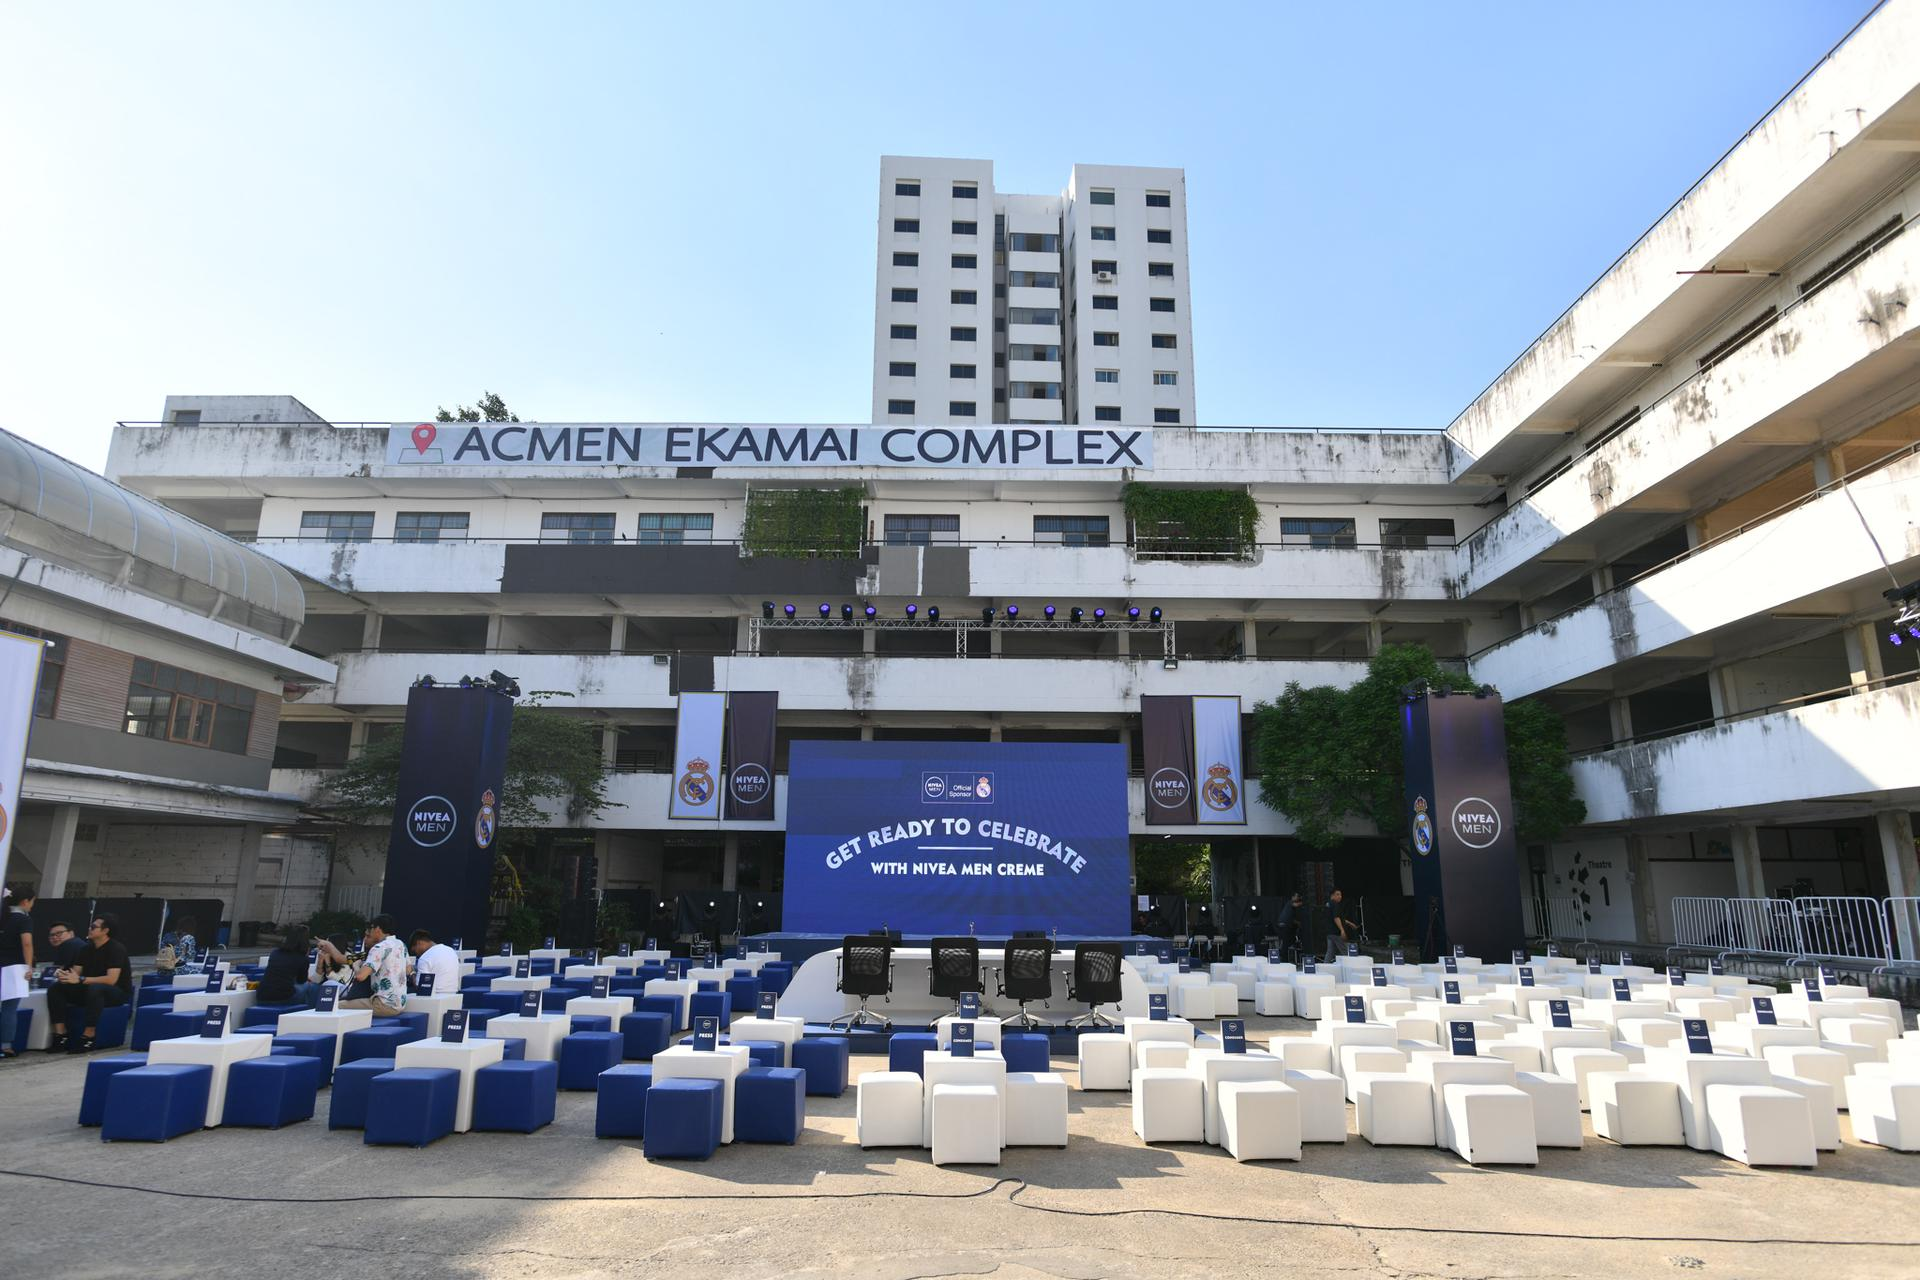 Acmen Ekamai Complex - Outdoor Space 1